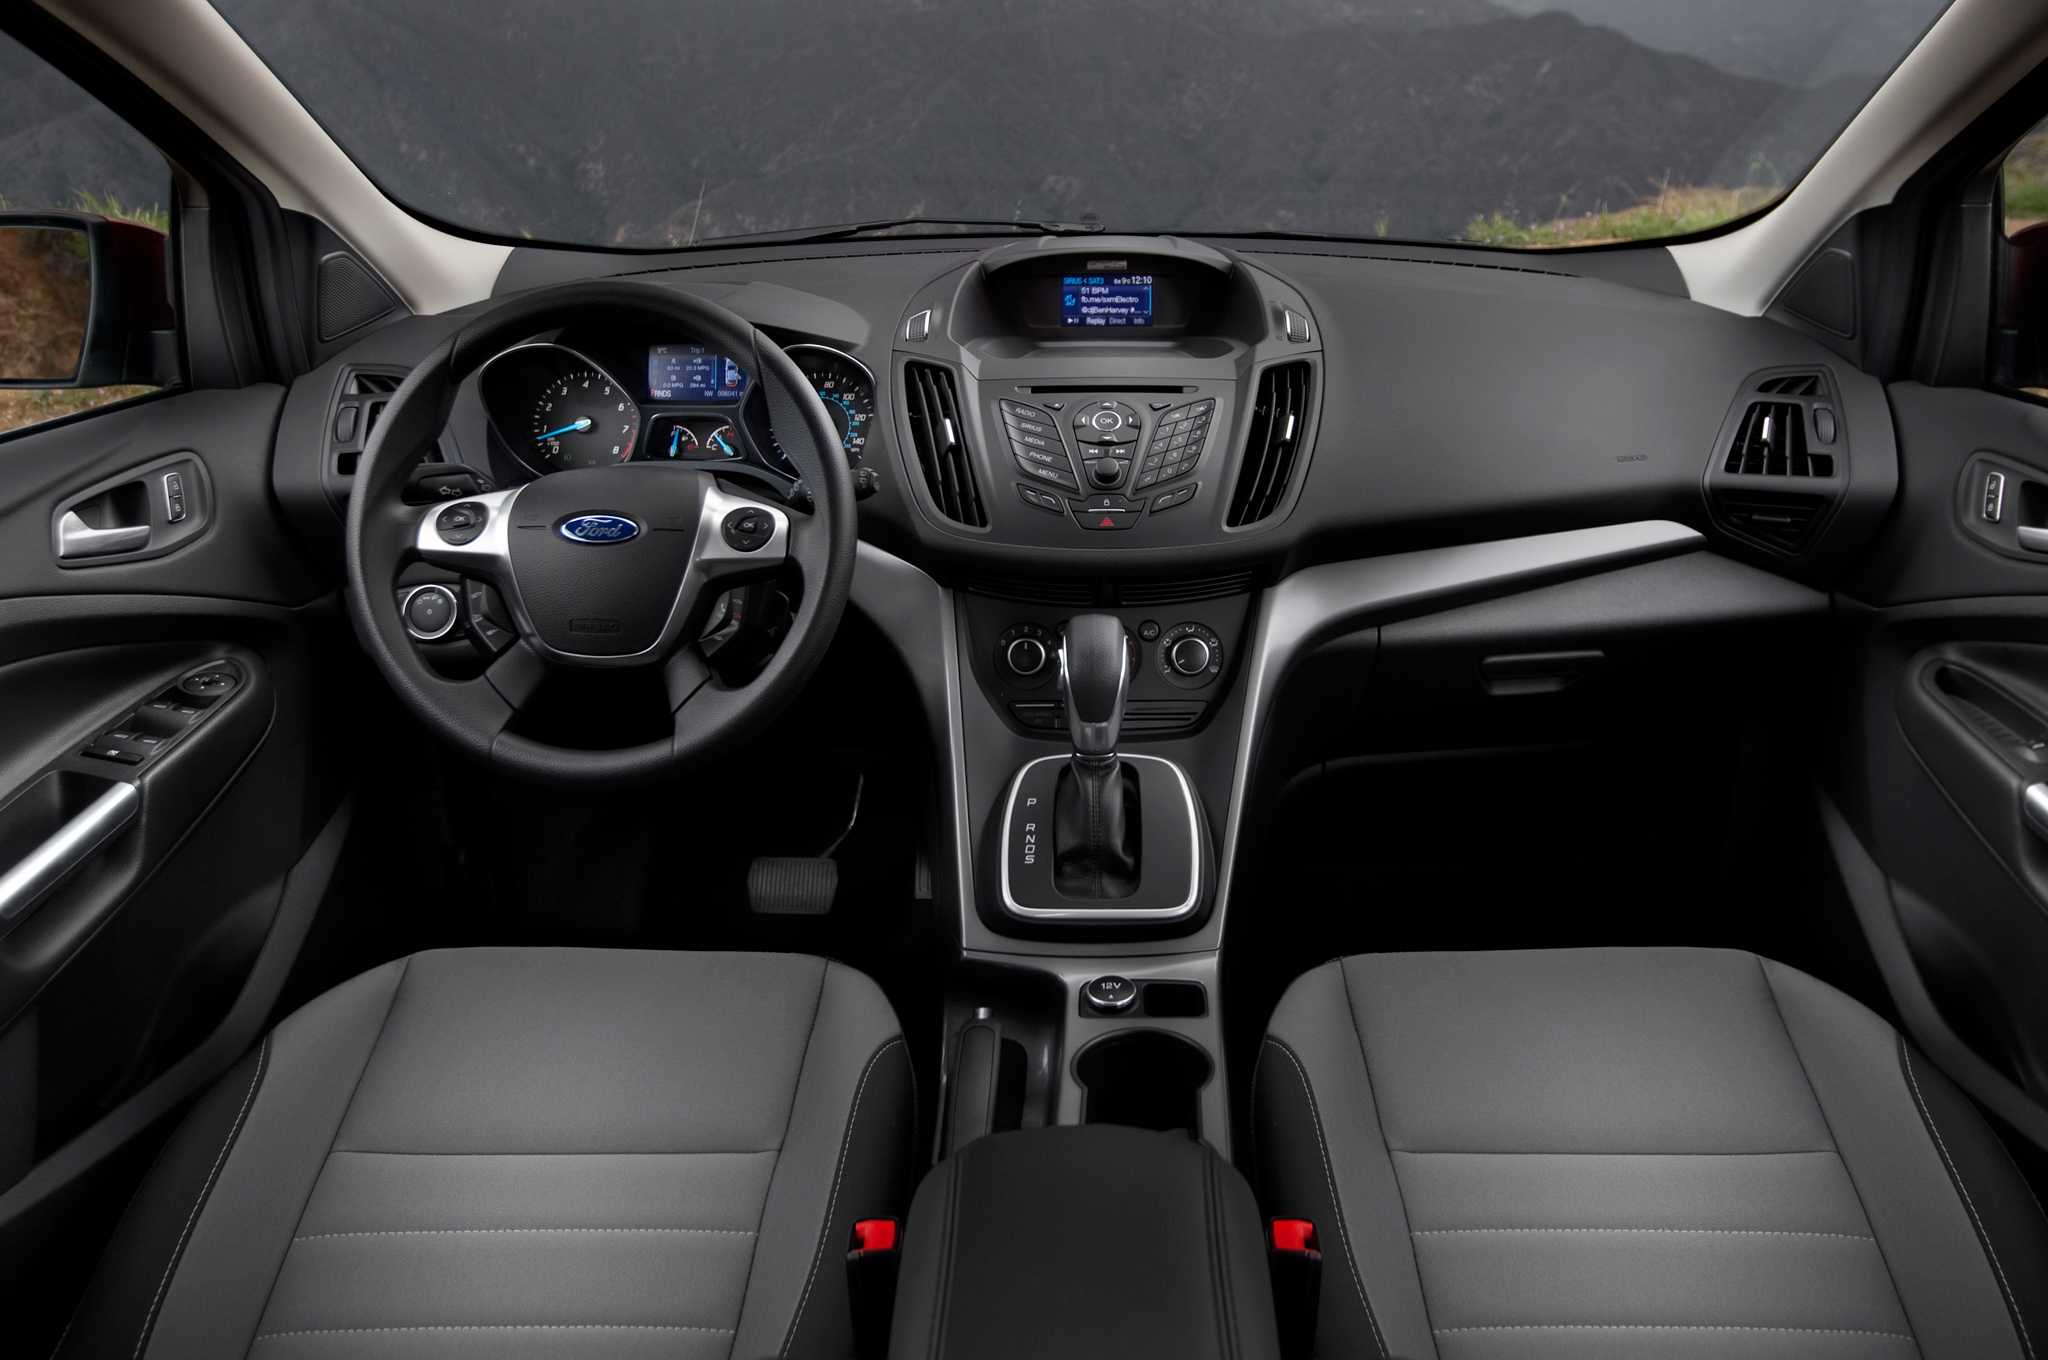 2014 ford escape image 12